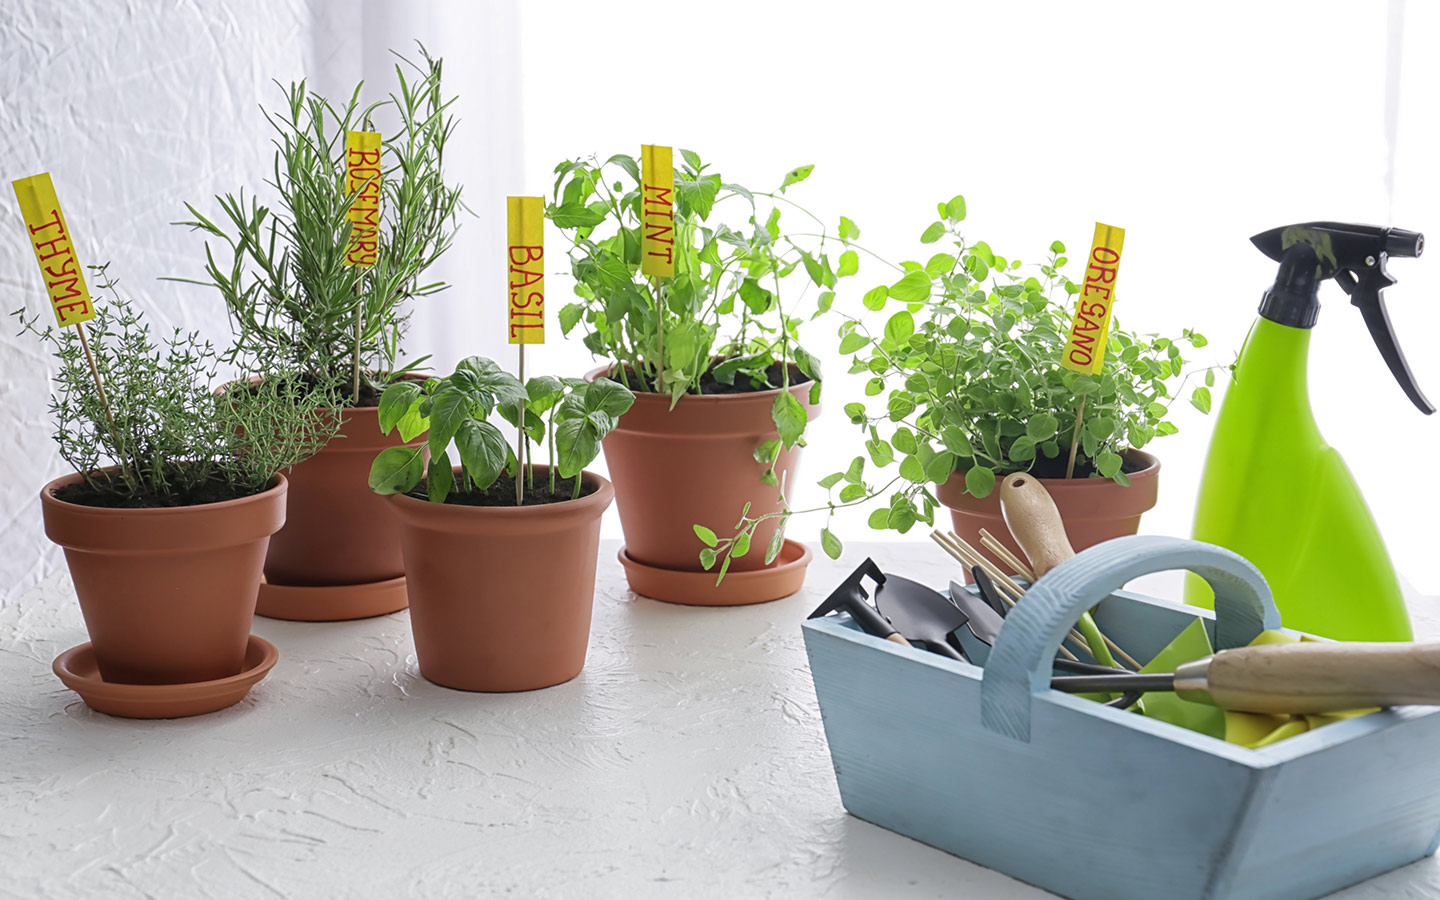 An array of tools that you need to farm in your home garden